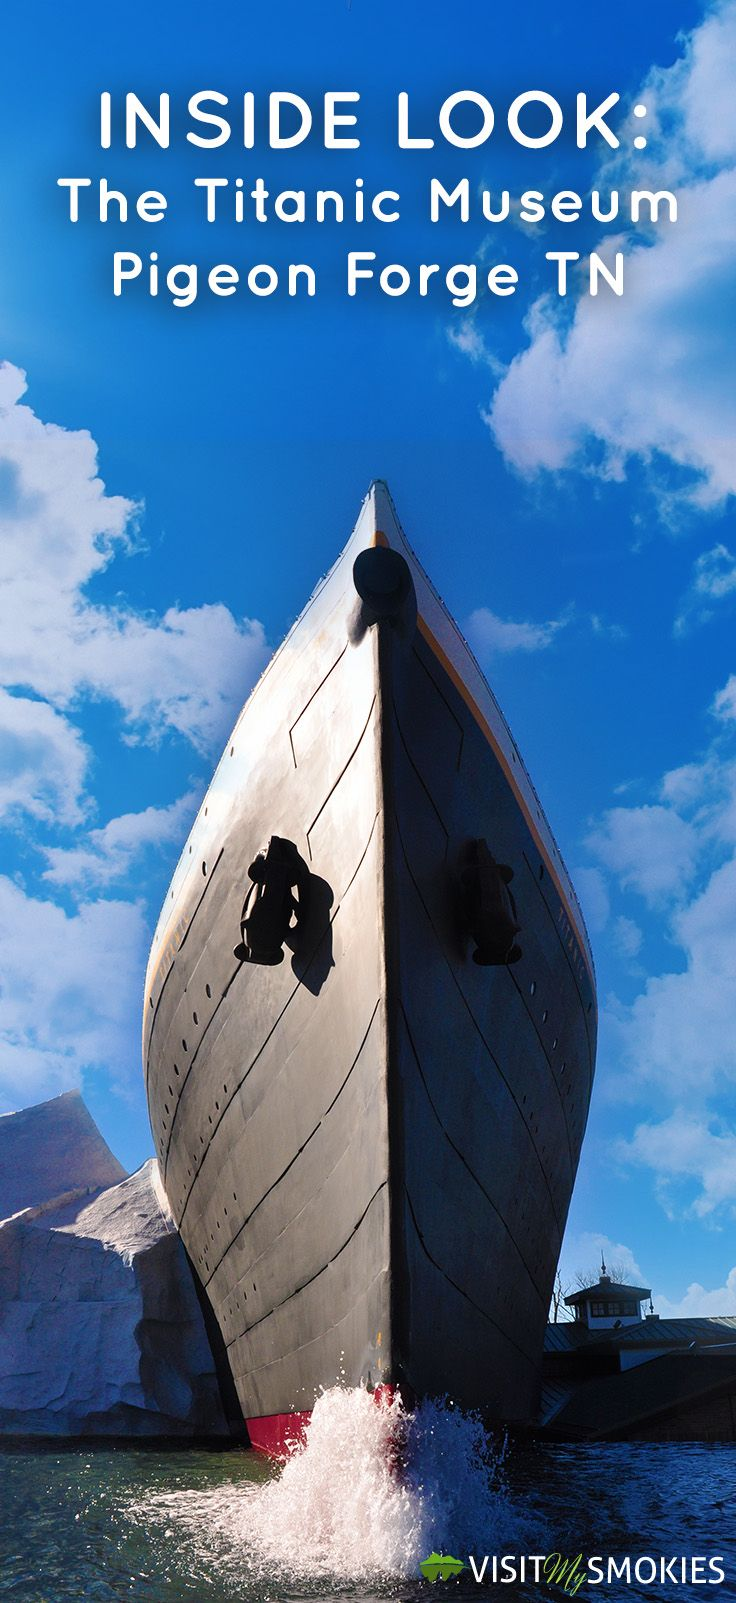 Inside Look: The Titanic Museum Pigeon Forge TN - http://www.visitmysmokies.com/blog/pigeon-forge/attractions-pigeon-forge/inside-look-titanic-museum-pigeon-forge-tn/